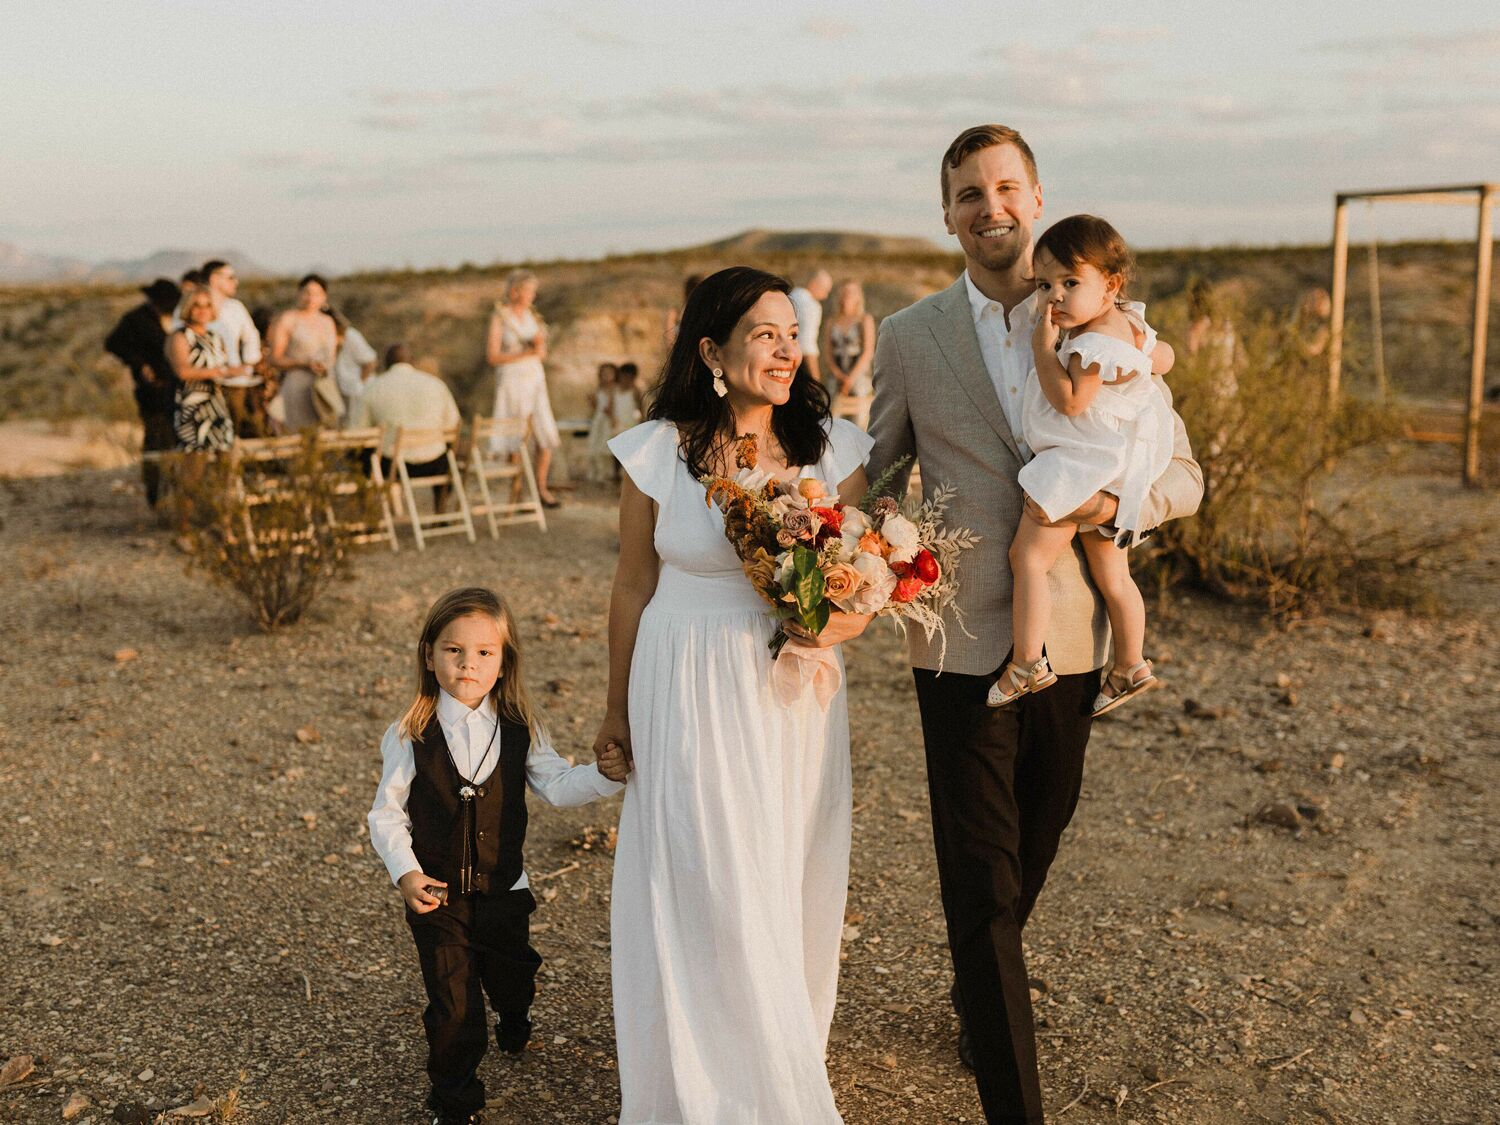 These Small Wedding Ideas Work for COVID & Beyond